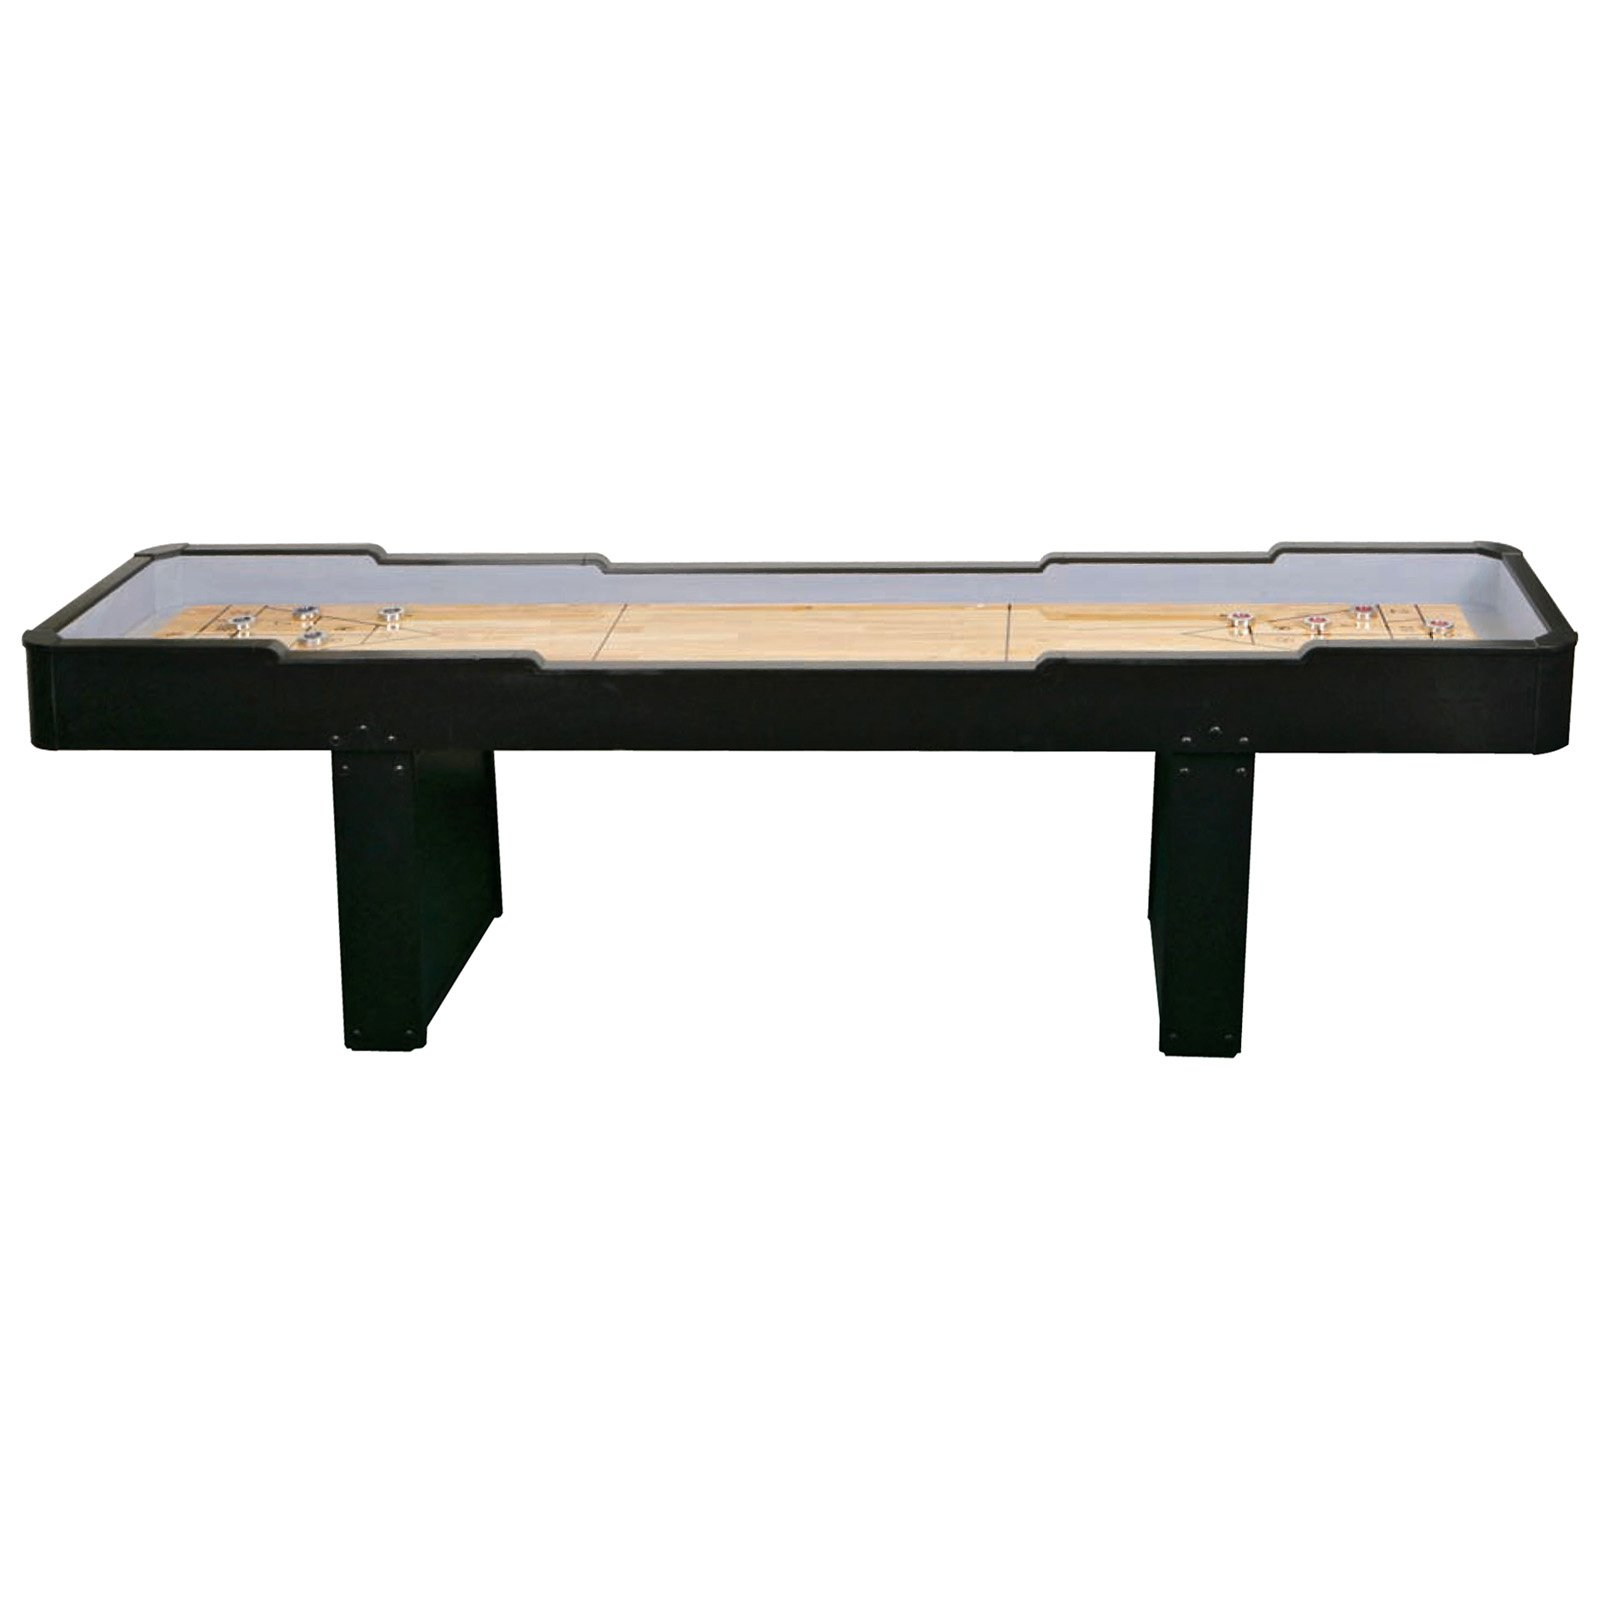 black wooden shuffleboard table for sale with double legs ideas